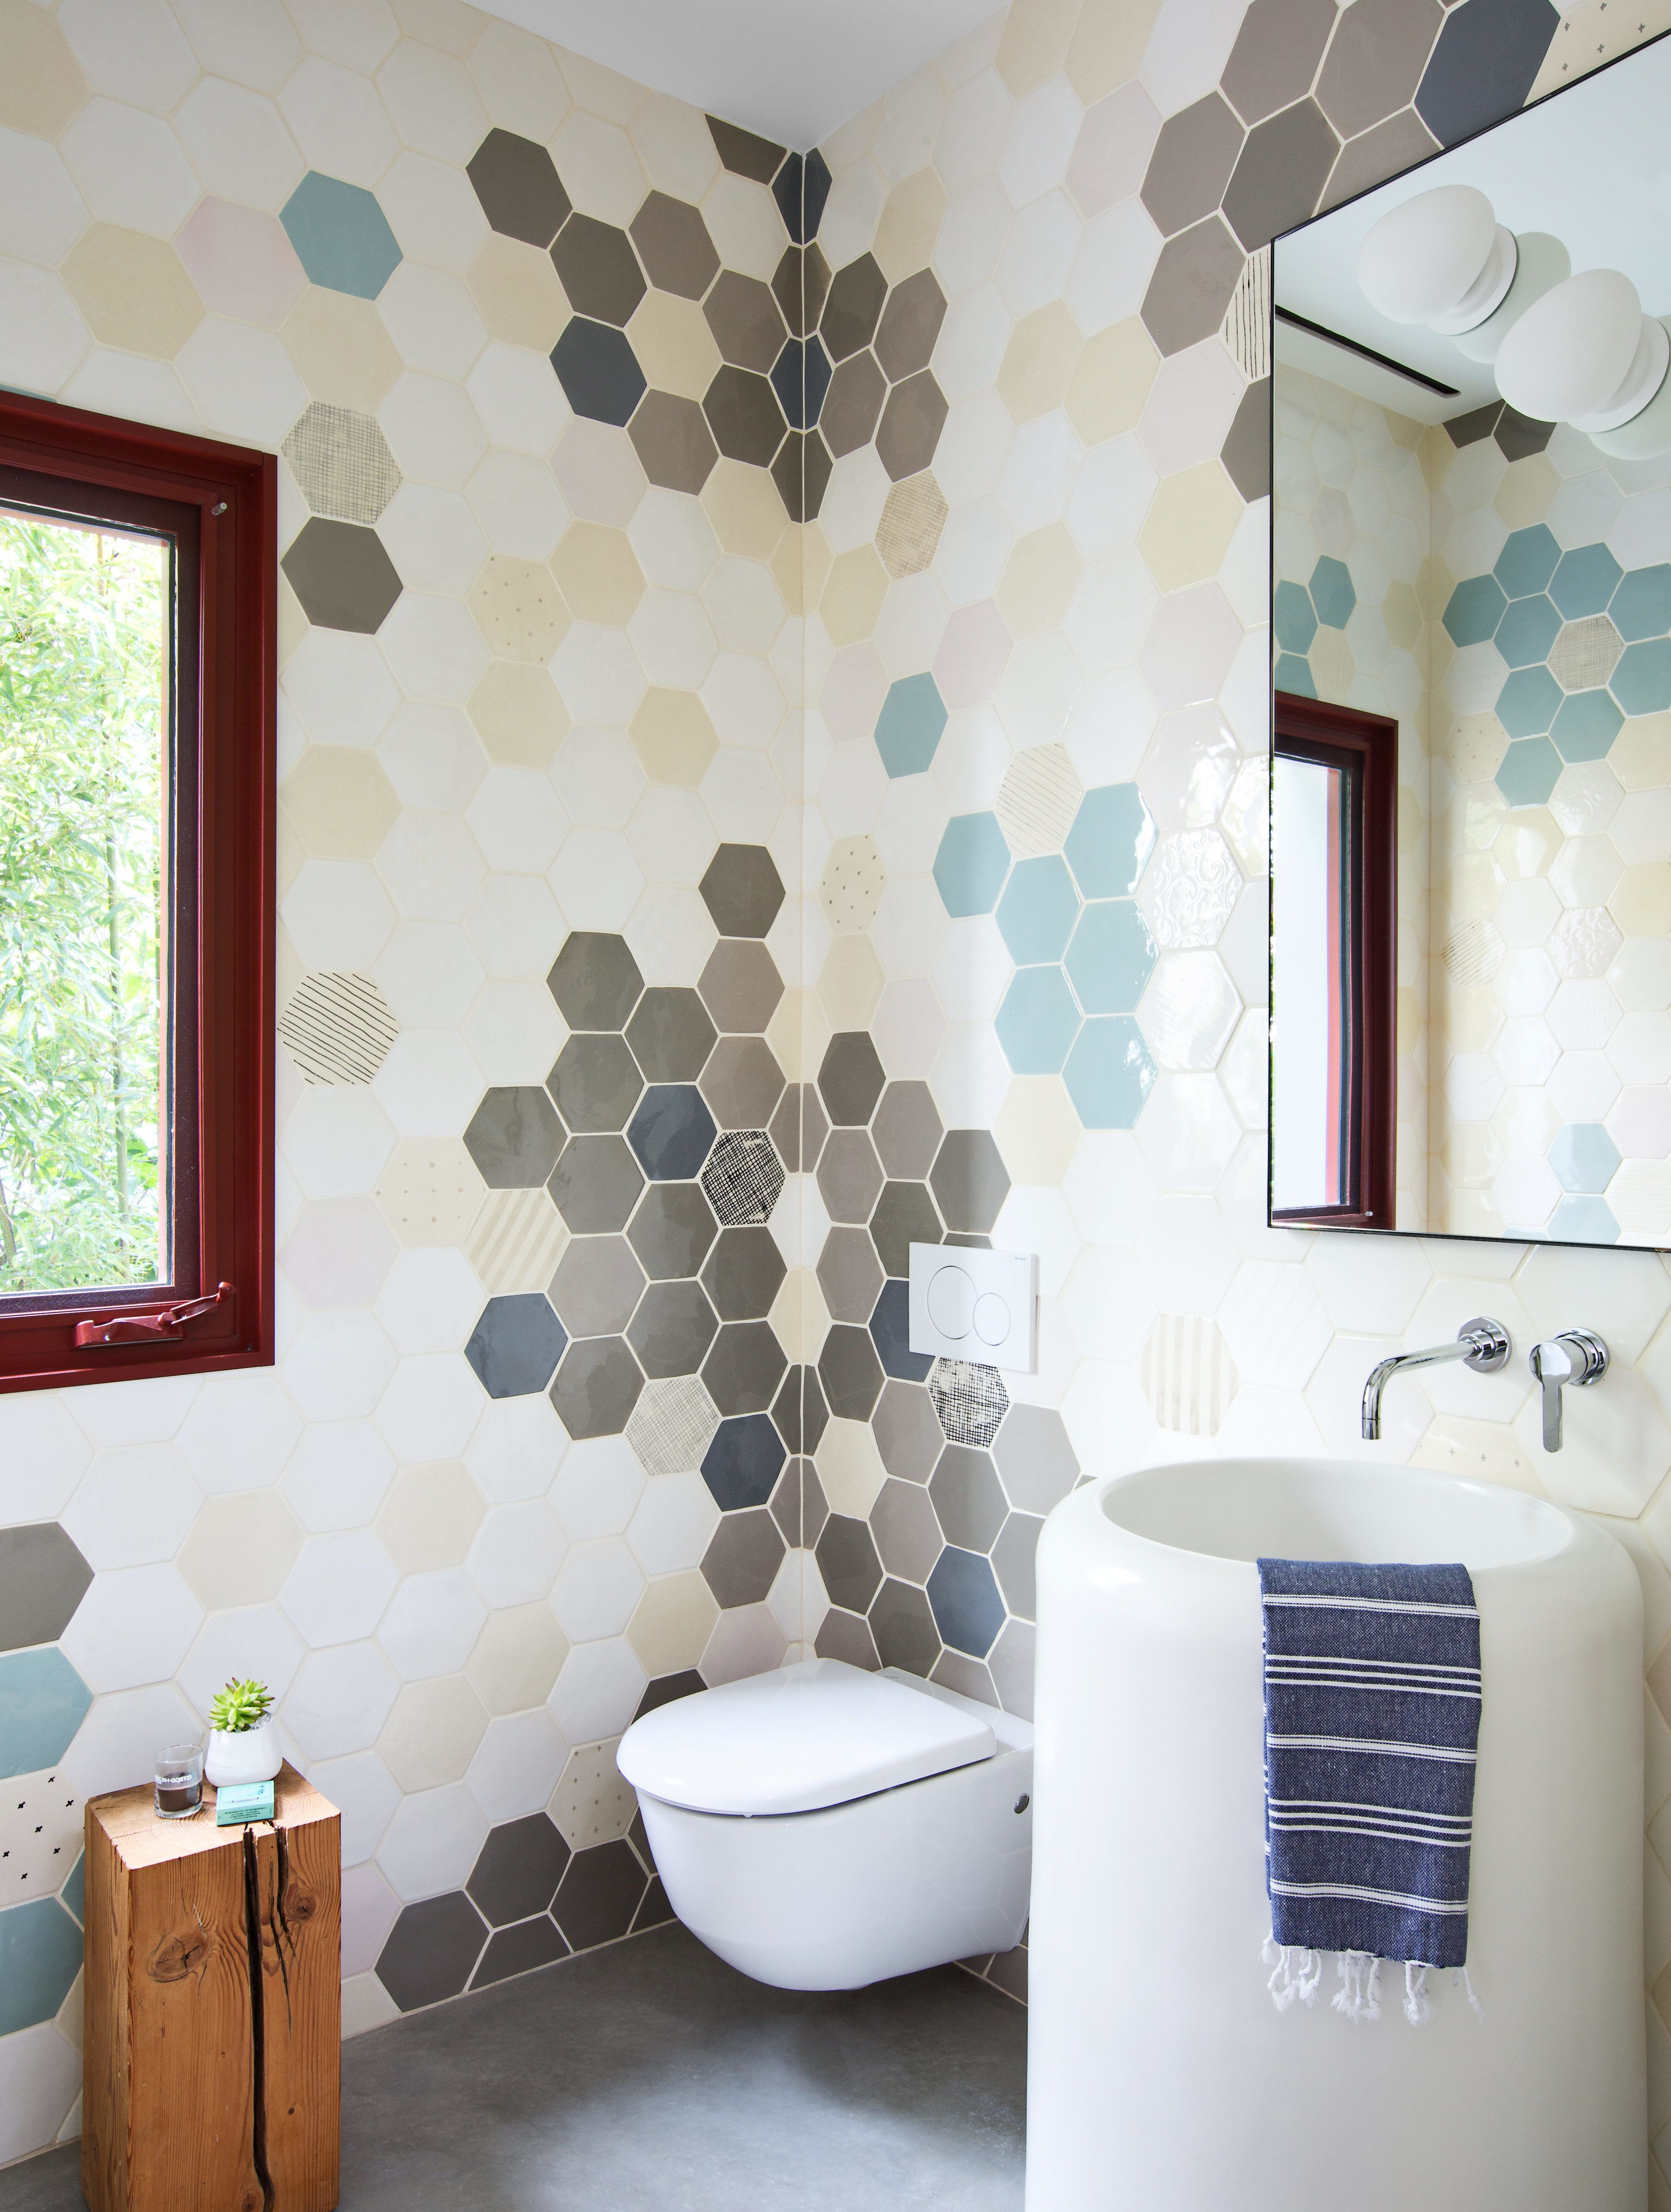 Photo 3 Of 3 In One Home Three Bathrooms Each With An Awesome Way Beautiful Tile Bathroom Decorating Small Spaces Bathroom Furnishings